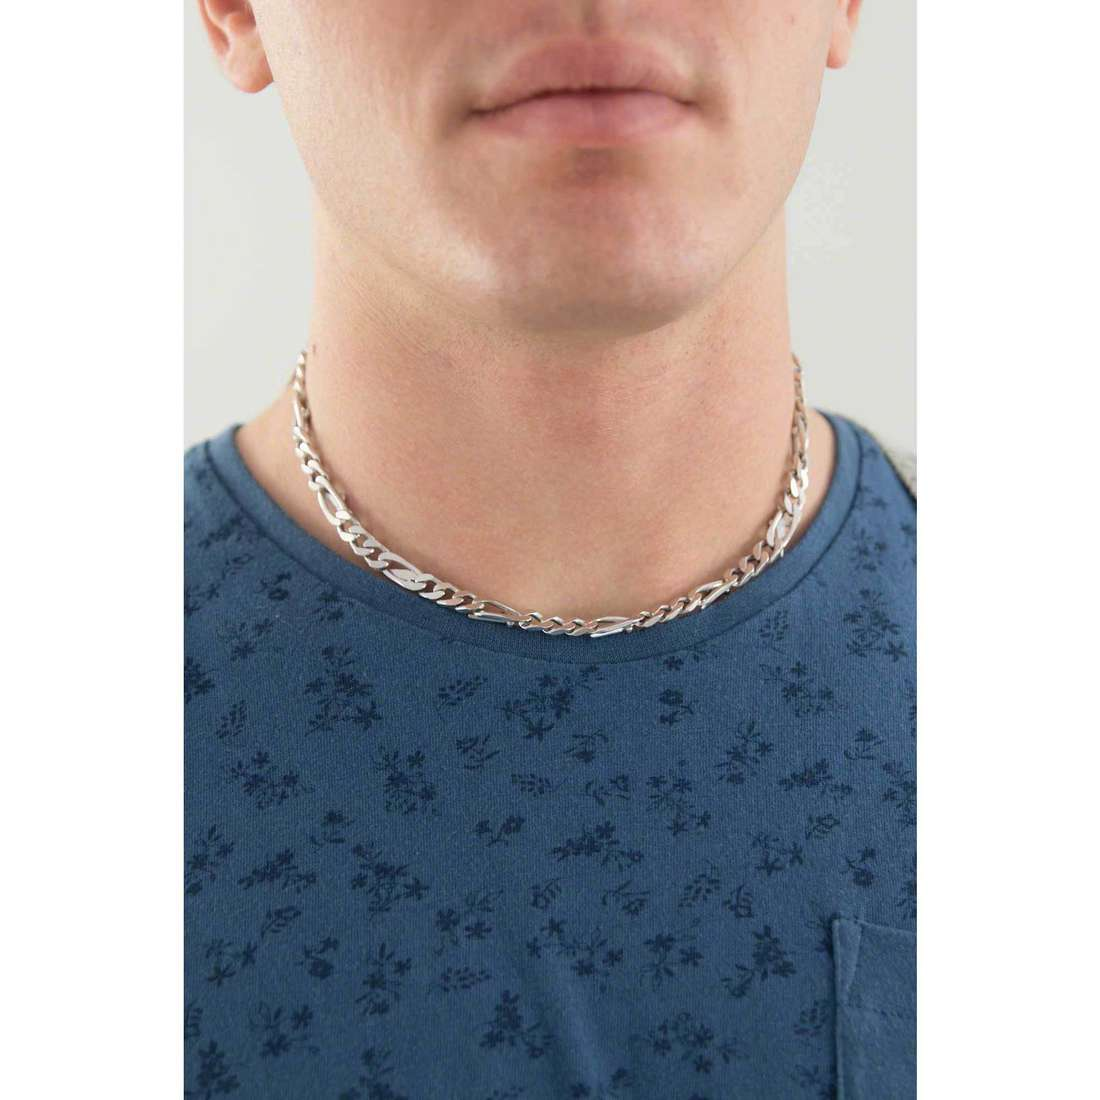 Cesare Paciotti necklaces man JPCL0196B indosso